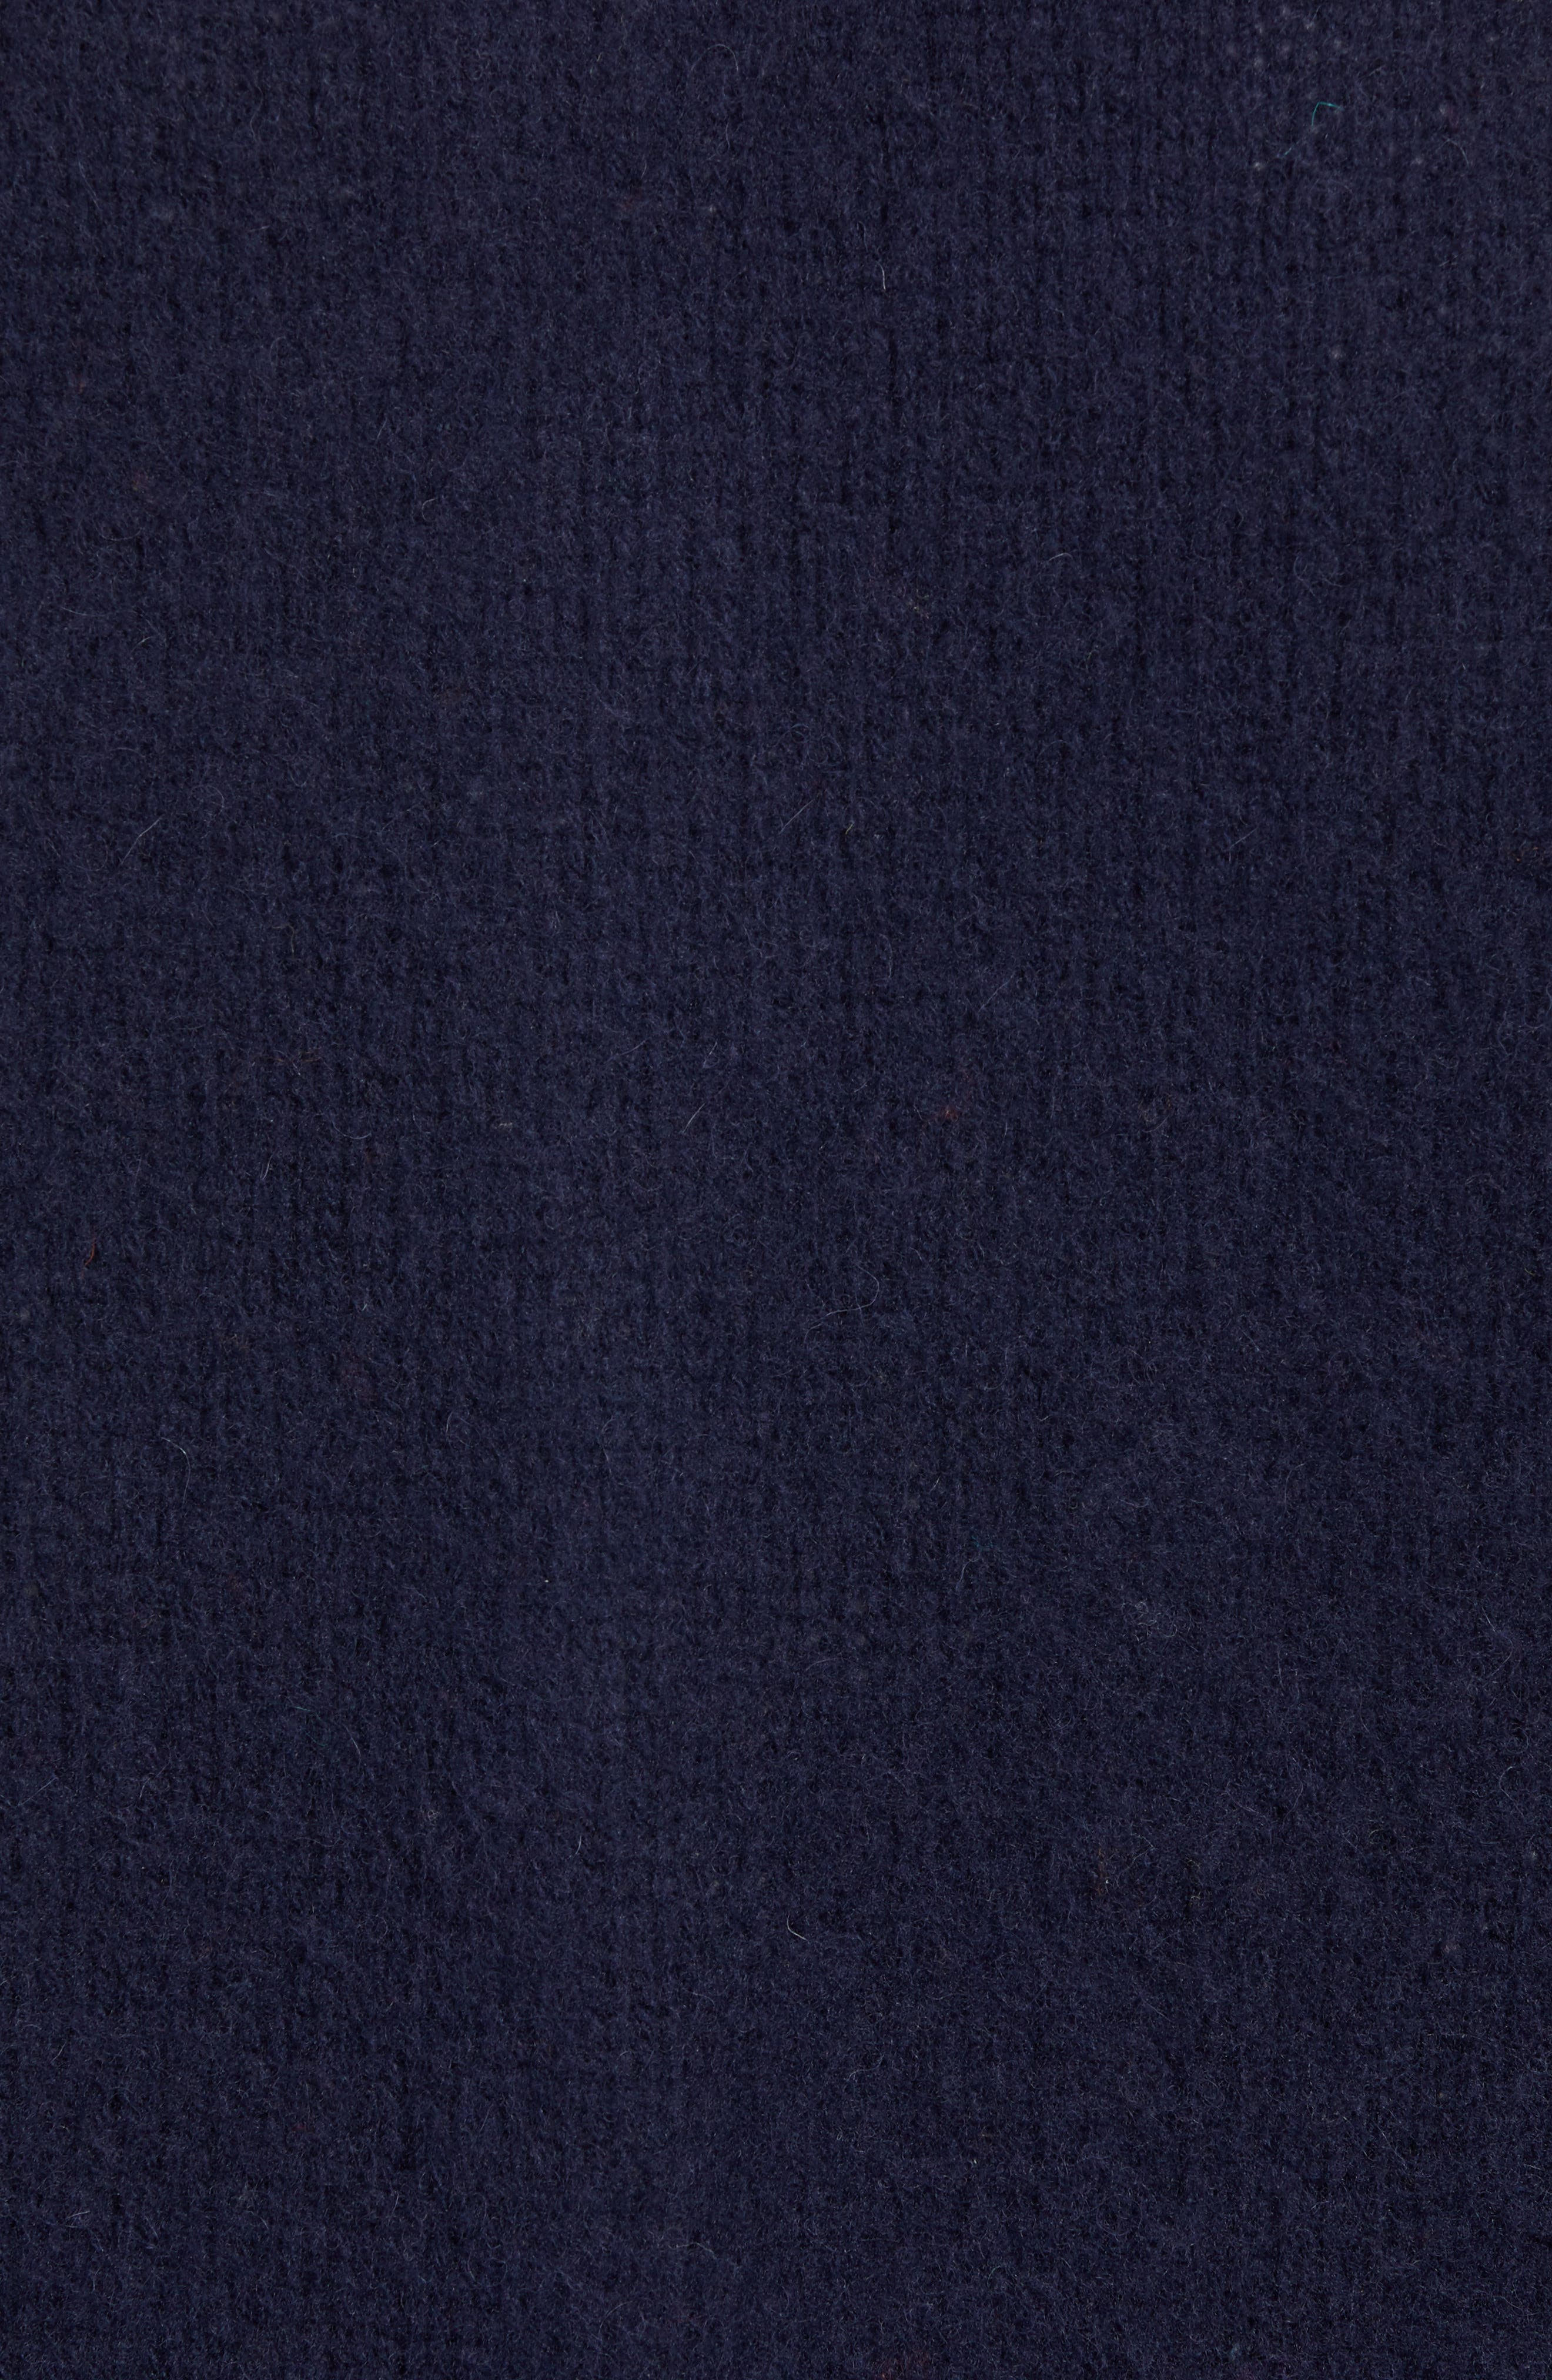 Baseball Cardy Wool Sweater,                             Alternate thumbnail 5, color,                             NAVY